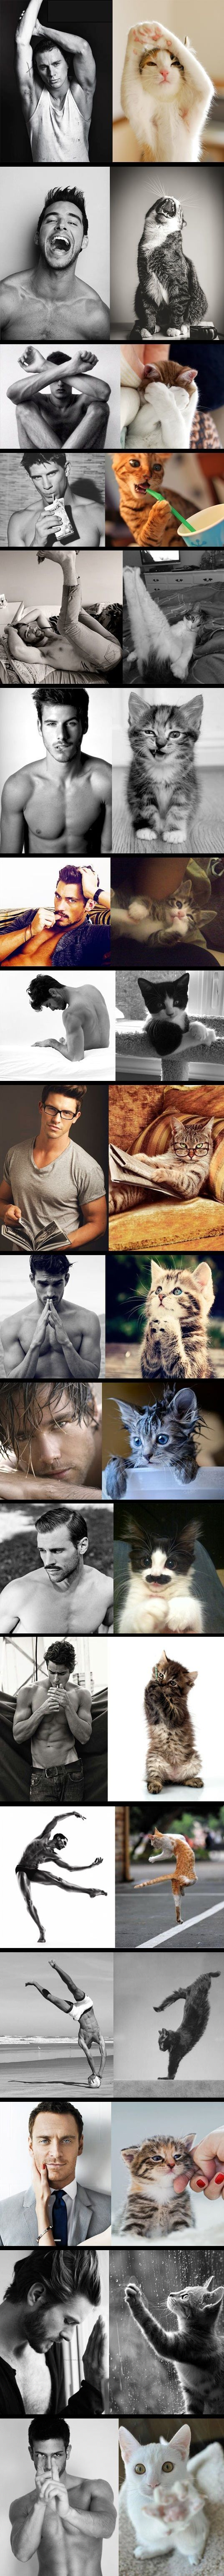 Cats > Male Models my two fav things